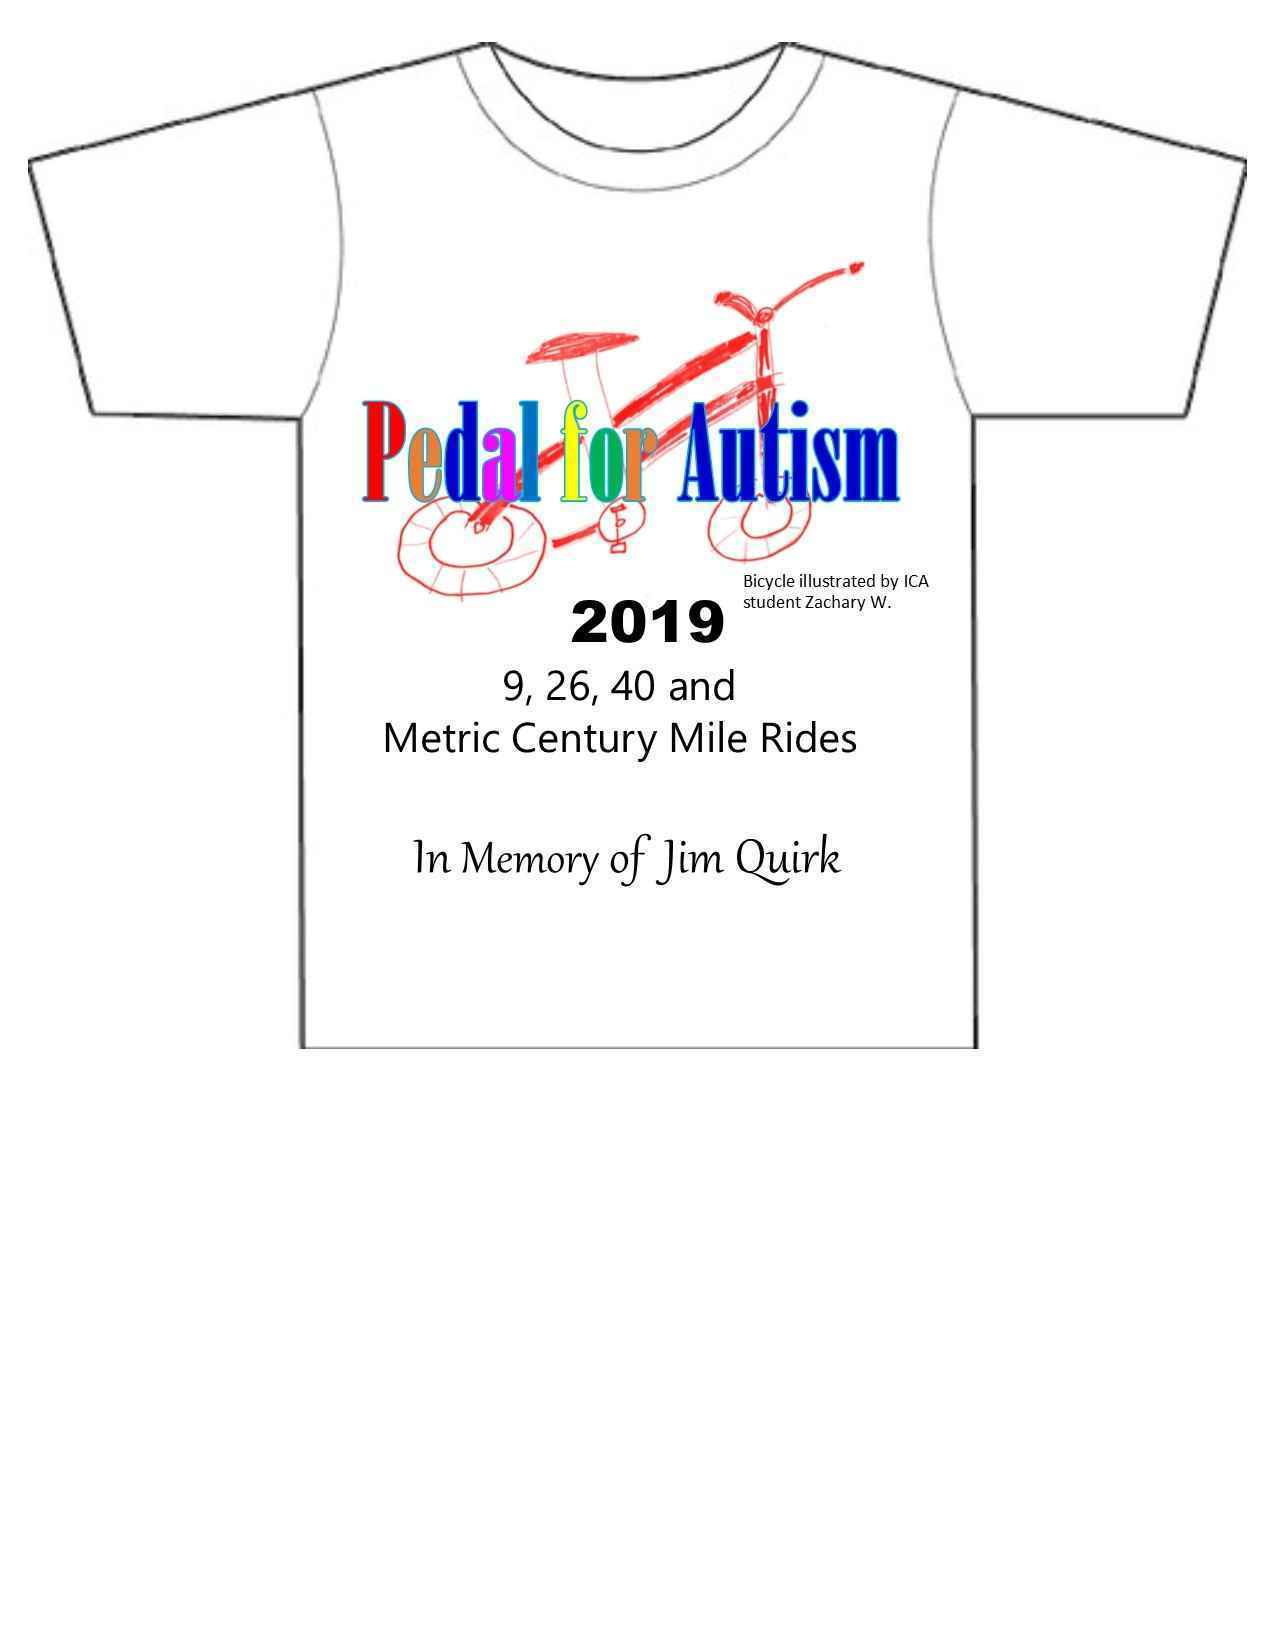 Pedal for Autism T-shirts image